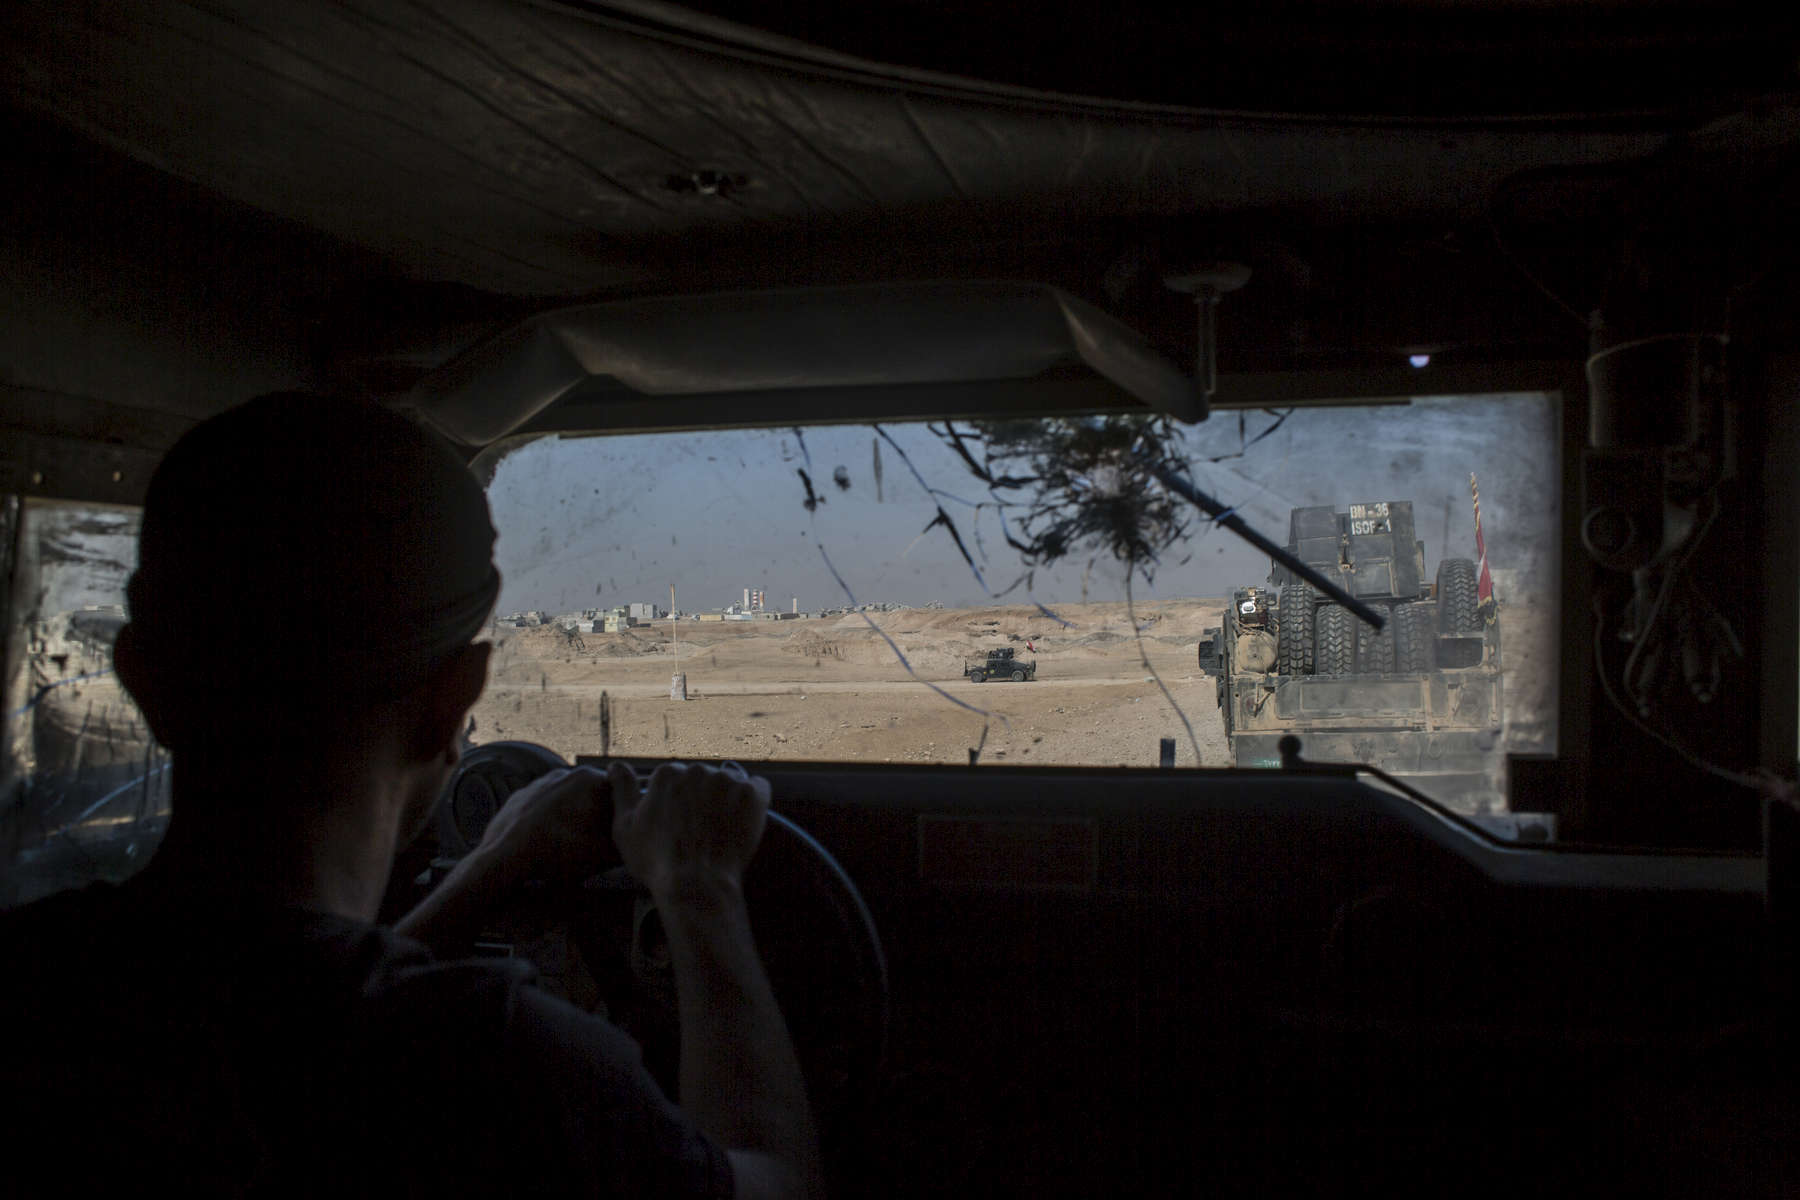 05/11/2016 -- Mosul, Iraq -- On the way to the frontline with Iraqi special forces. Most of the Iraqi Humvees have been hit by ISIS snipers.